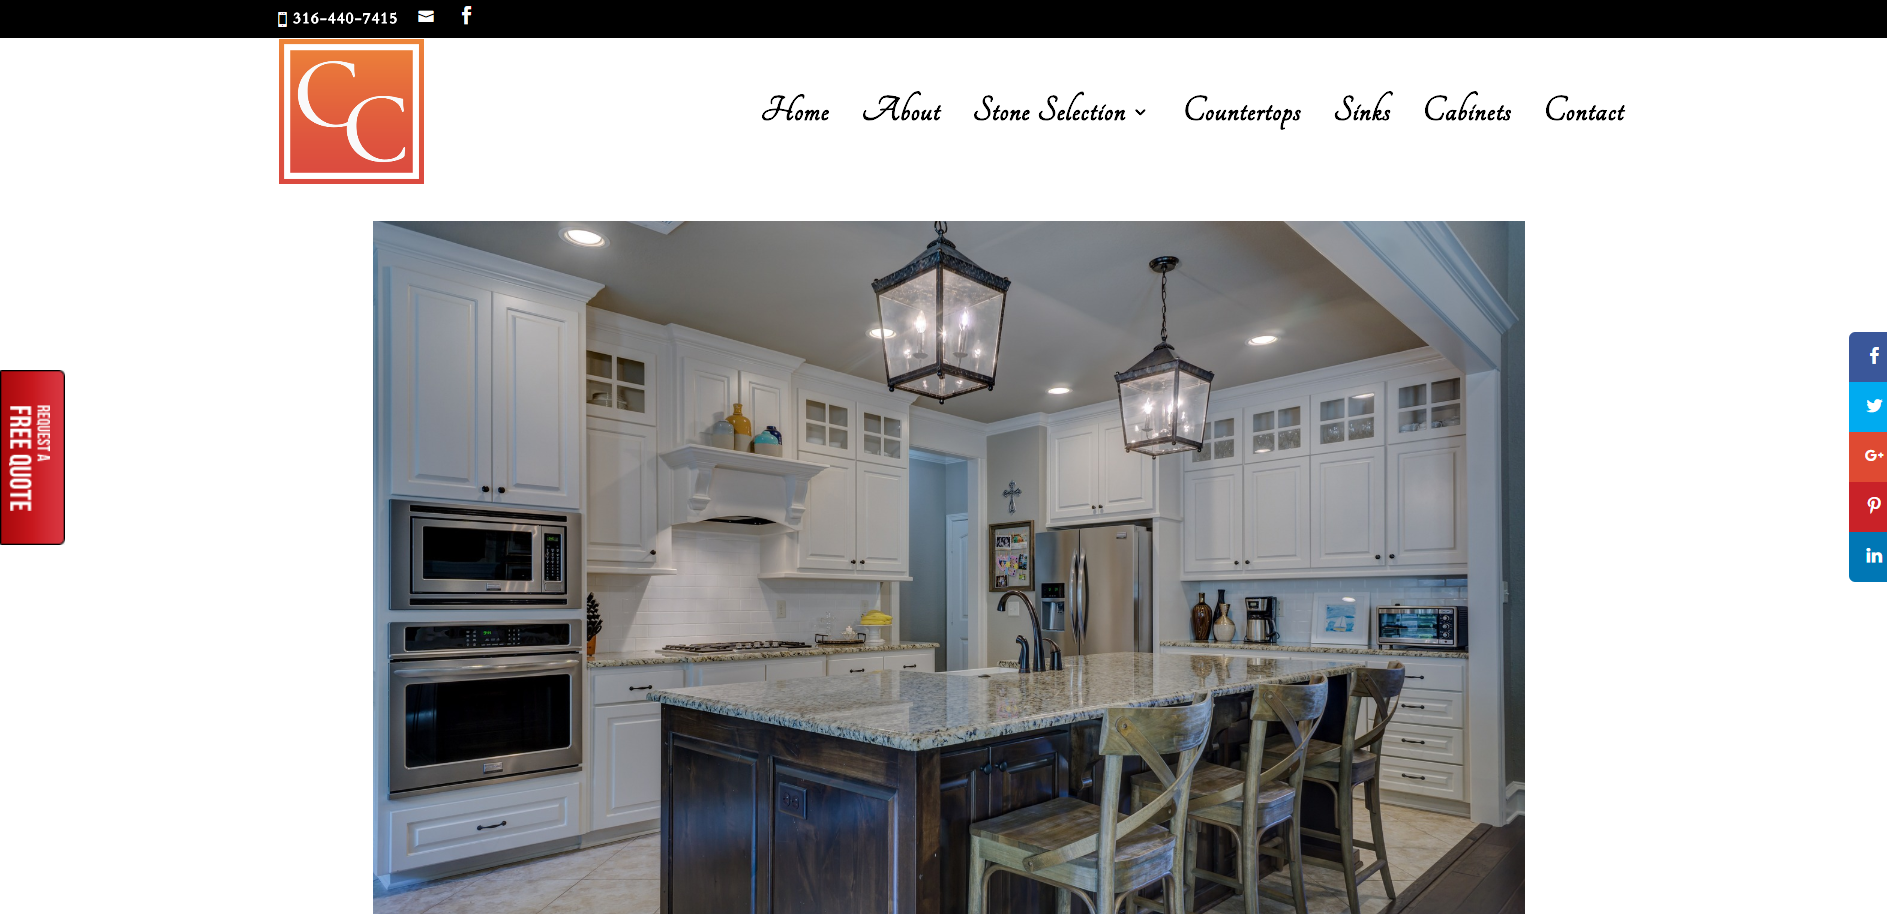 Countertop Concepts website